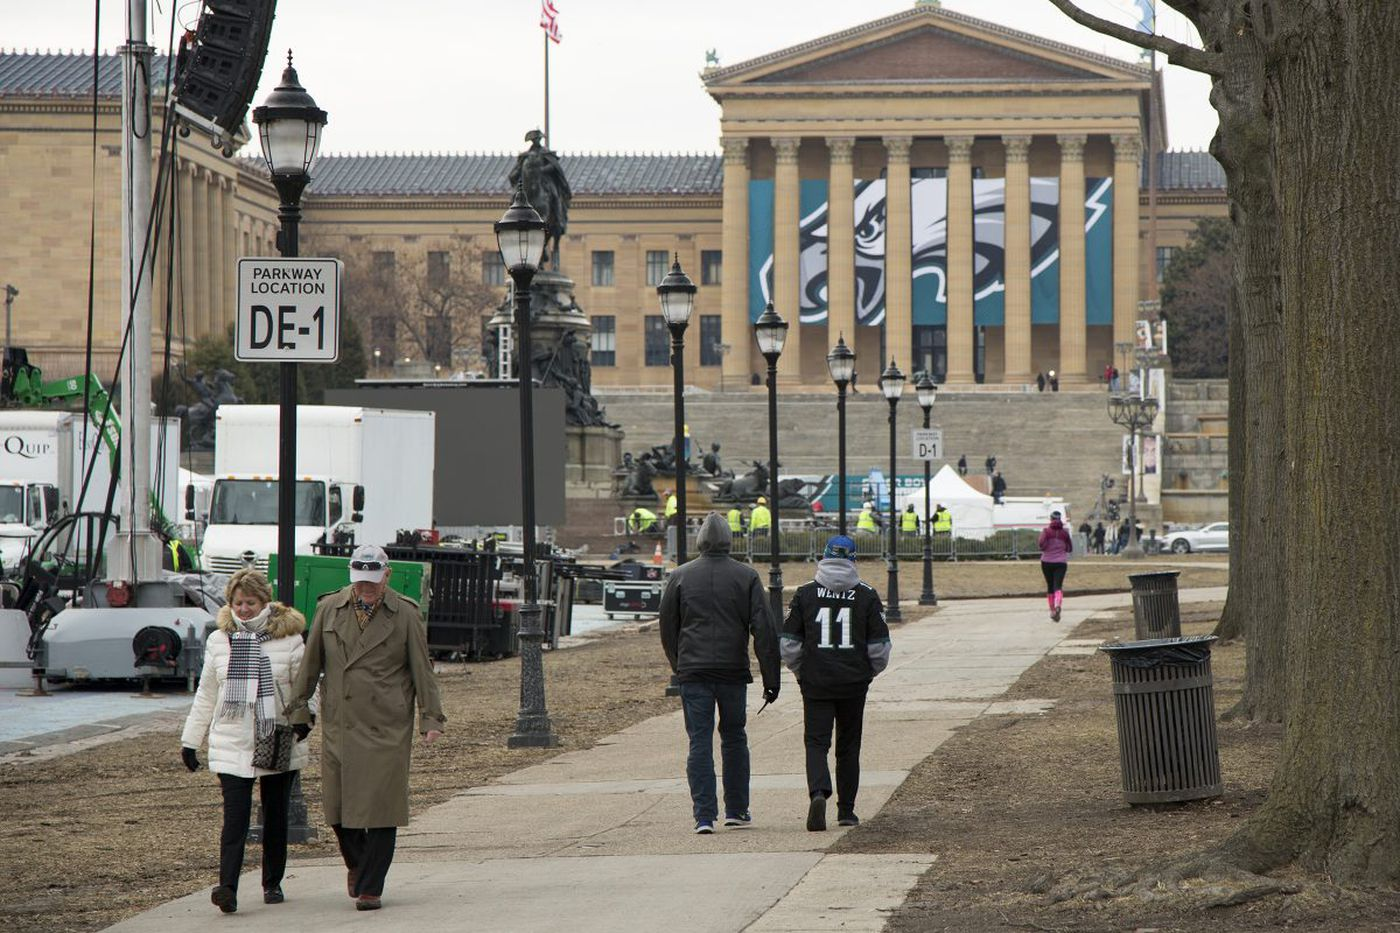 Eagles parade: List of places that will be closed Thursday